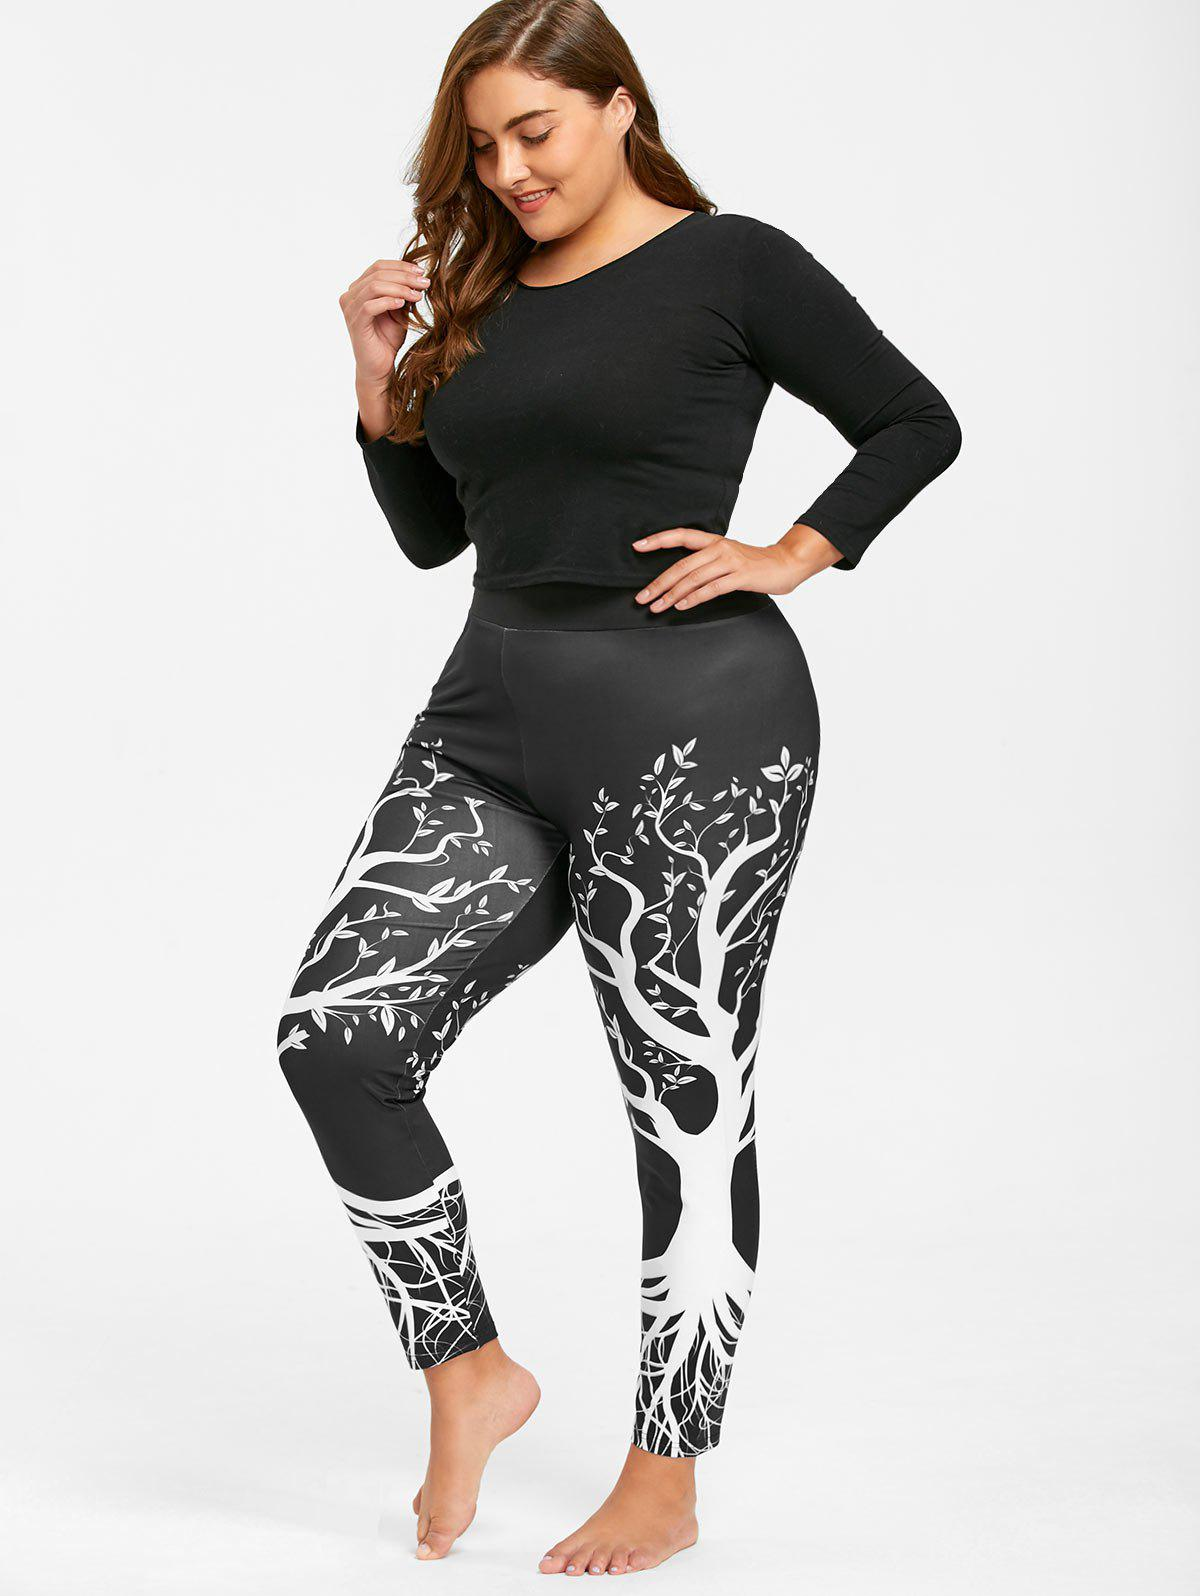 2018 leggings de gym imprim arbre grande taille noir xl in v tements de sport de grande taille. Black Bedroom Furniture Sets. Home Design Ideas